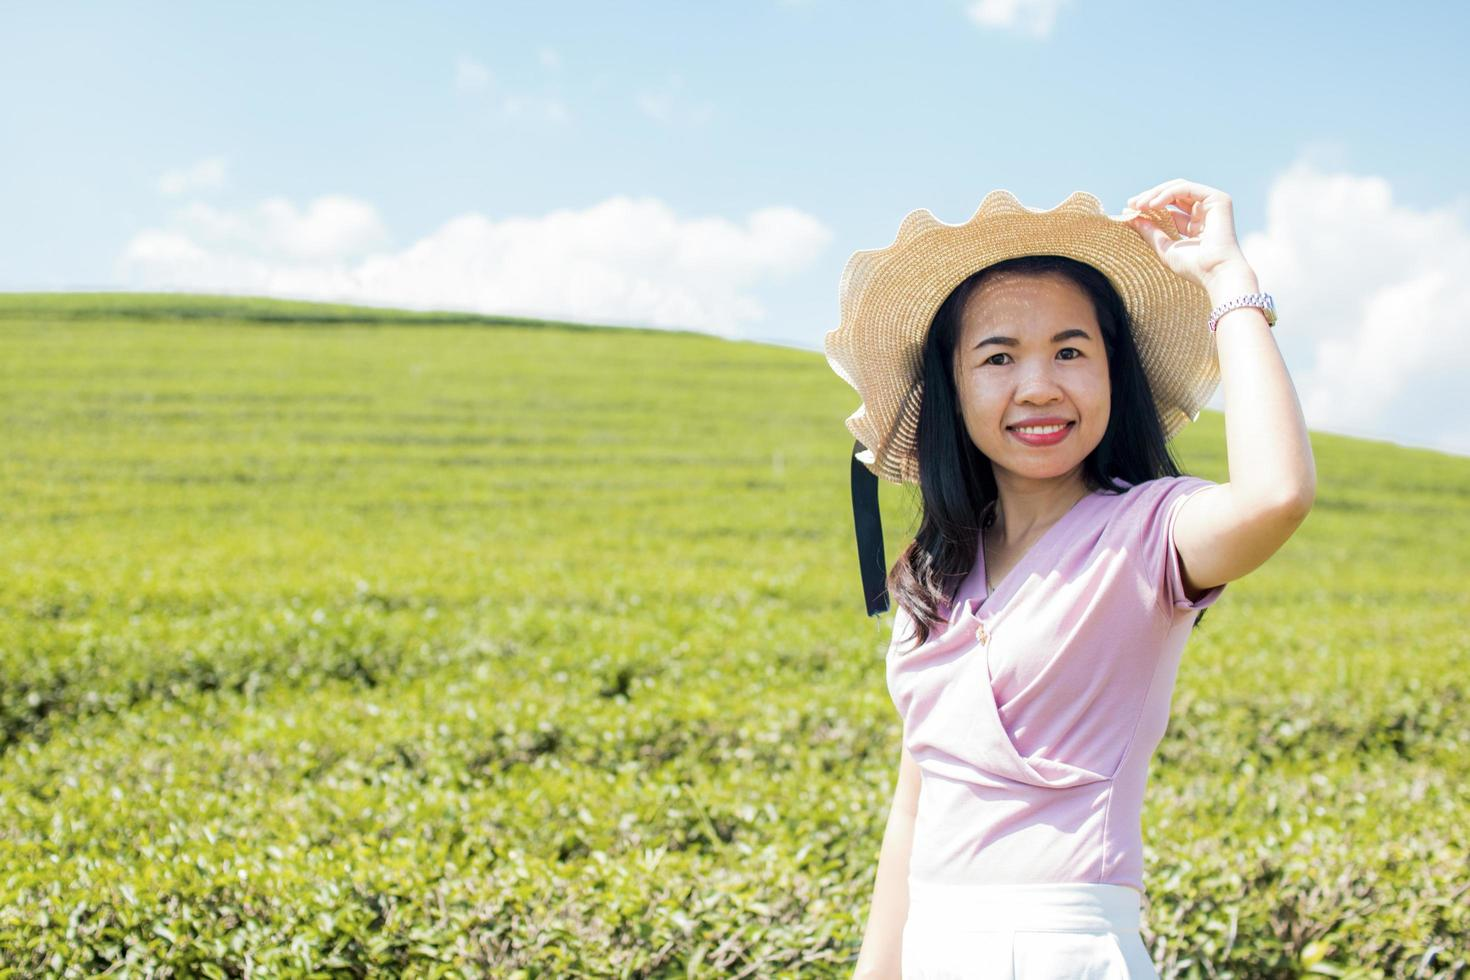 Woman wearing hat in front of a green field photo